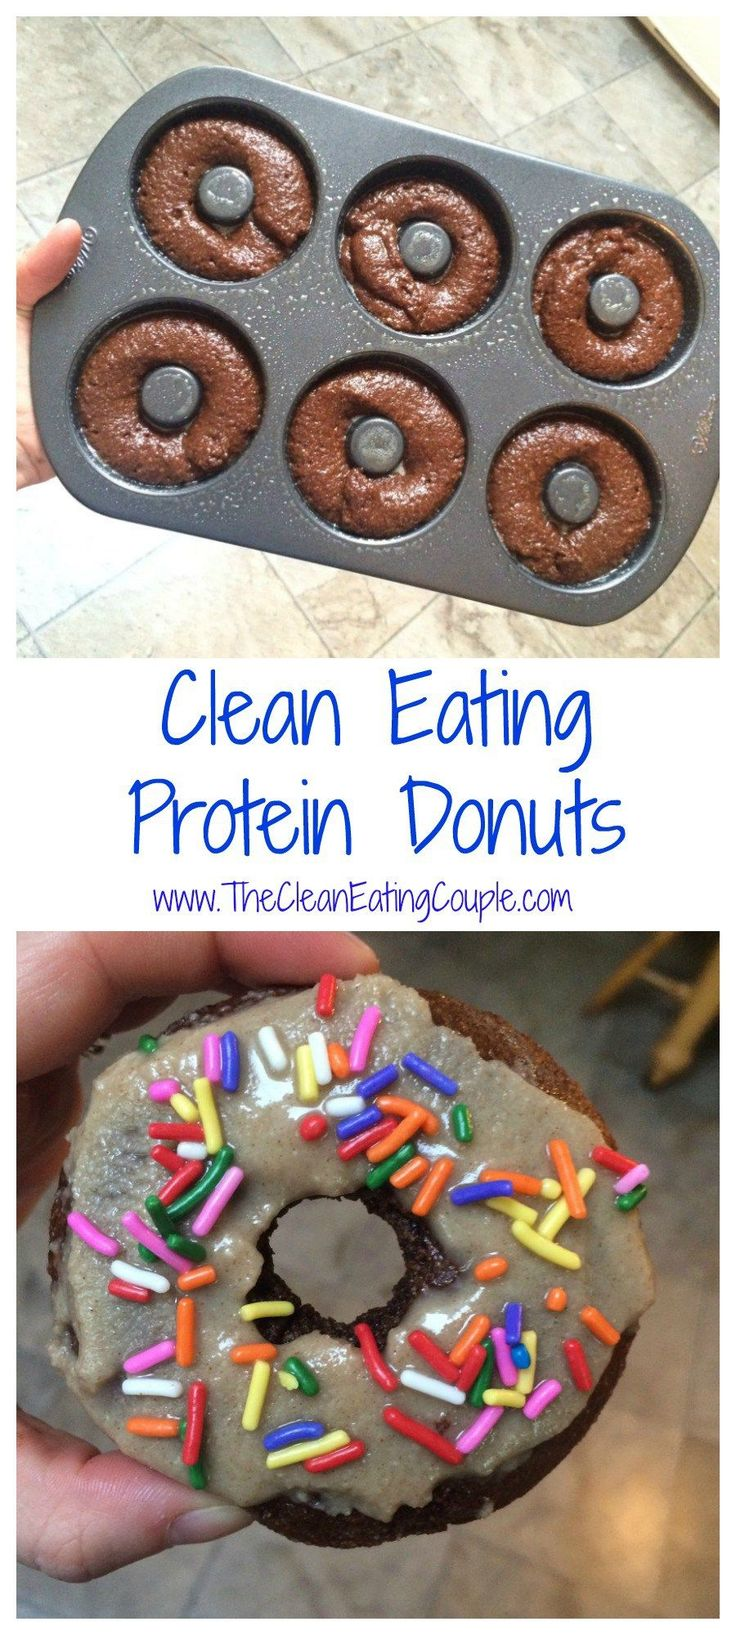 Clean Eating Protein Donuts   The Clean Eating Couple